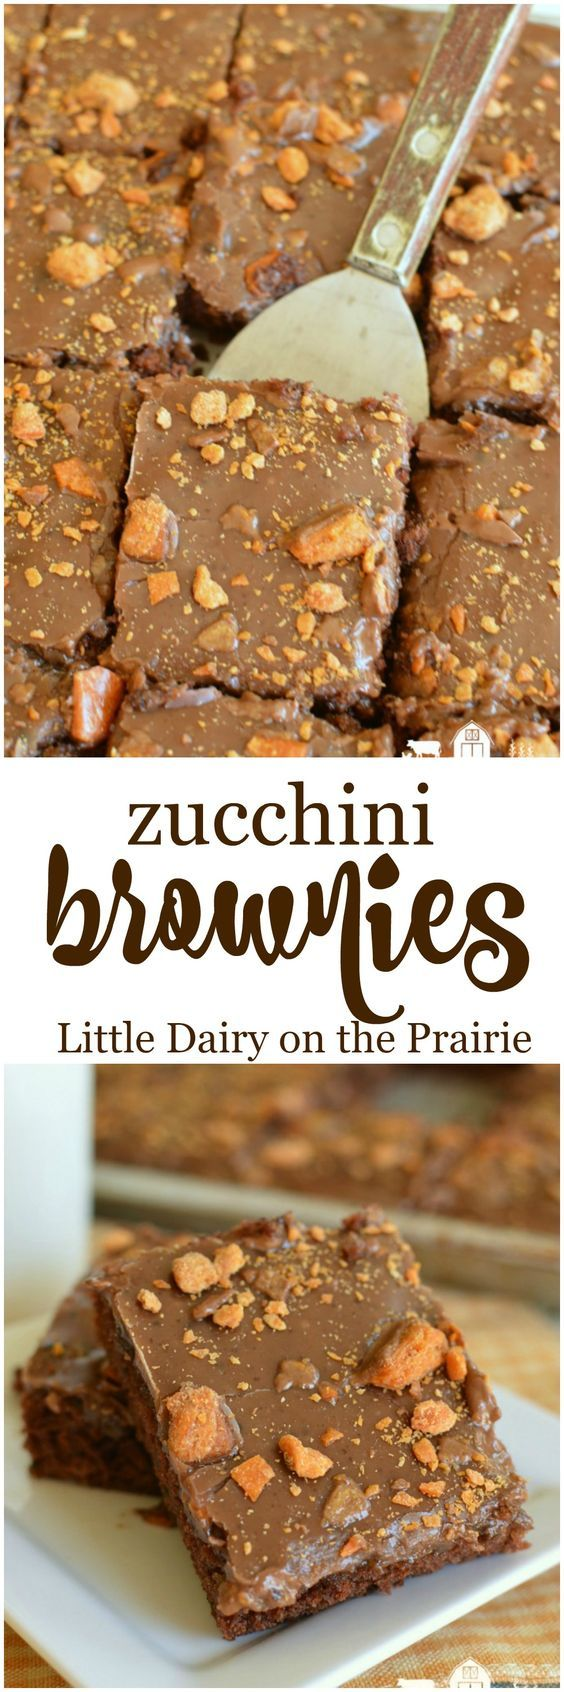 The best fudgy Zucchini Brownie, slathered in creamy chocolate icing, and sprinkled with crunchy Butterfingers! To die for!